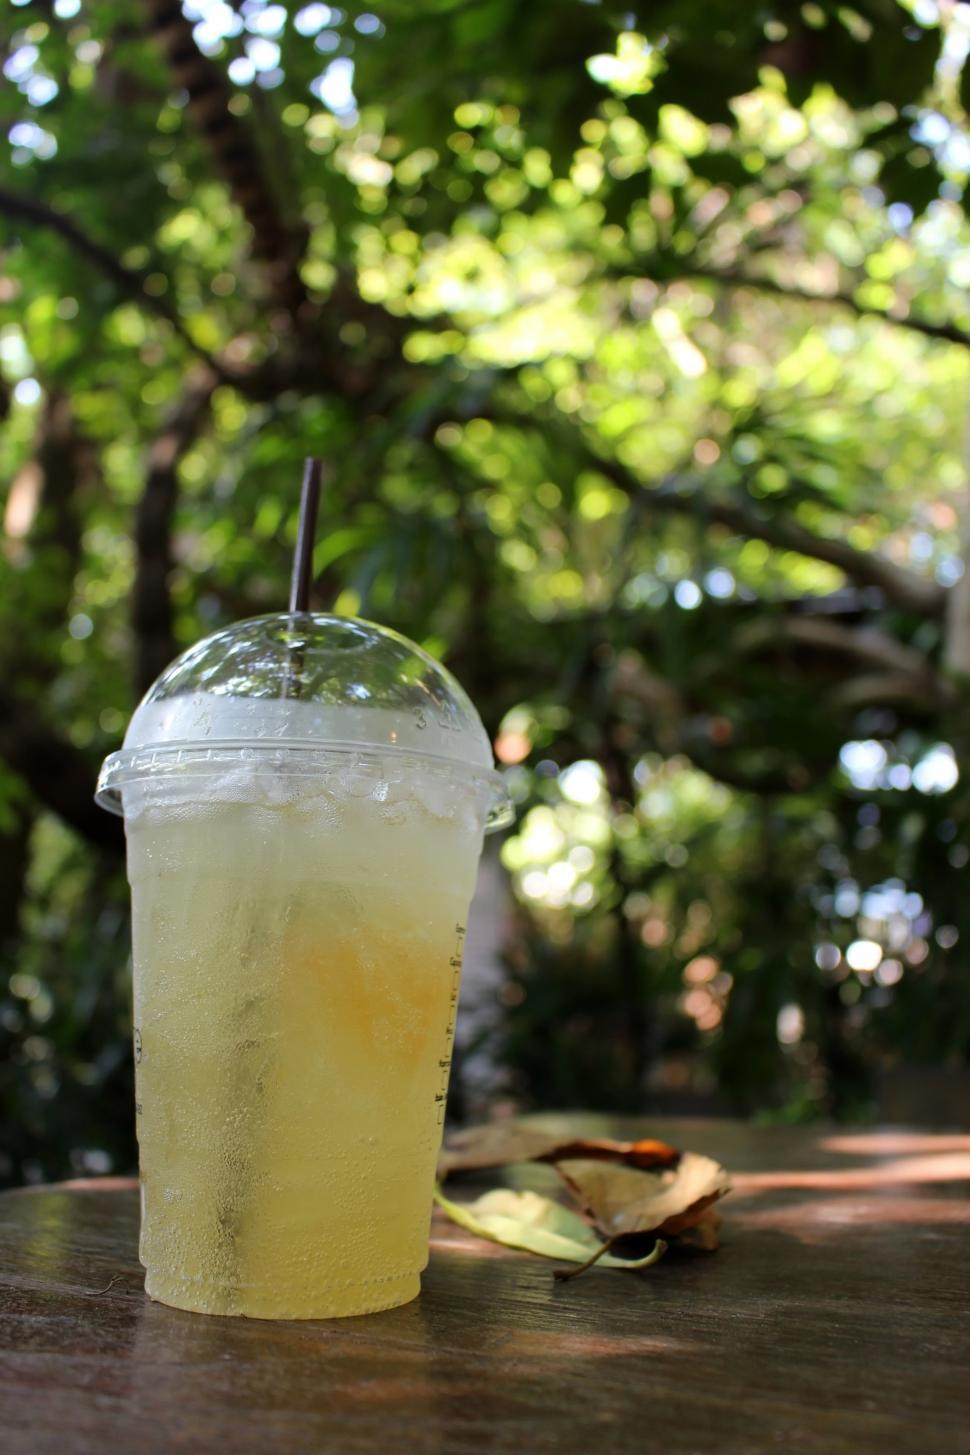 Download Free Stock HD Photo of Cup of iced lemon tea outside on a table in a tropical garden  Online